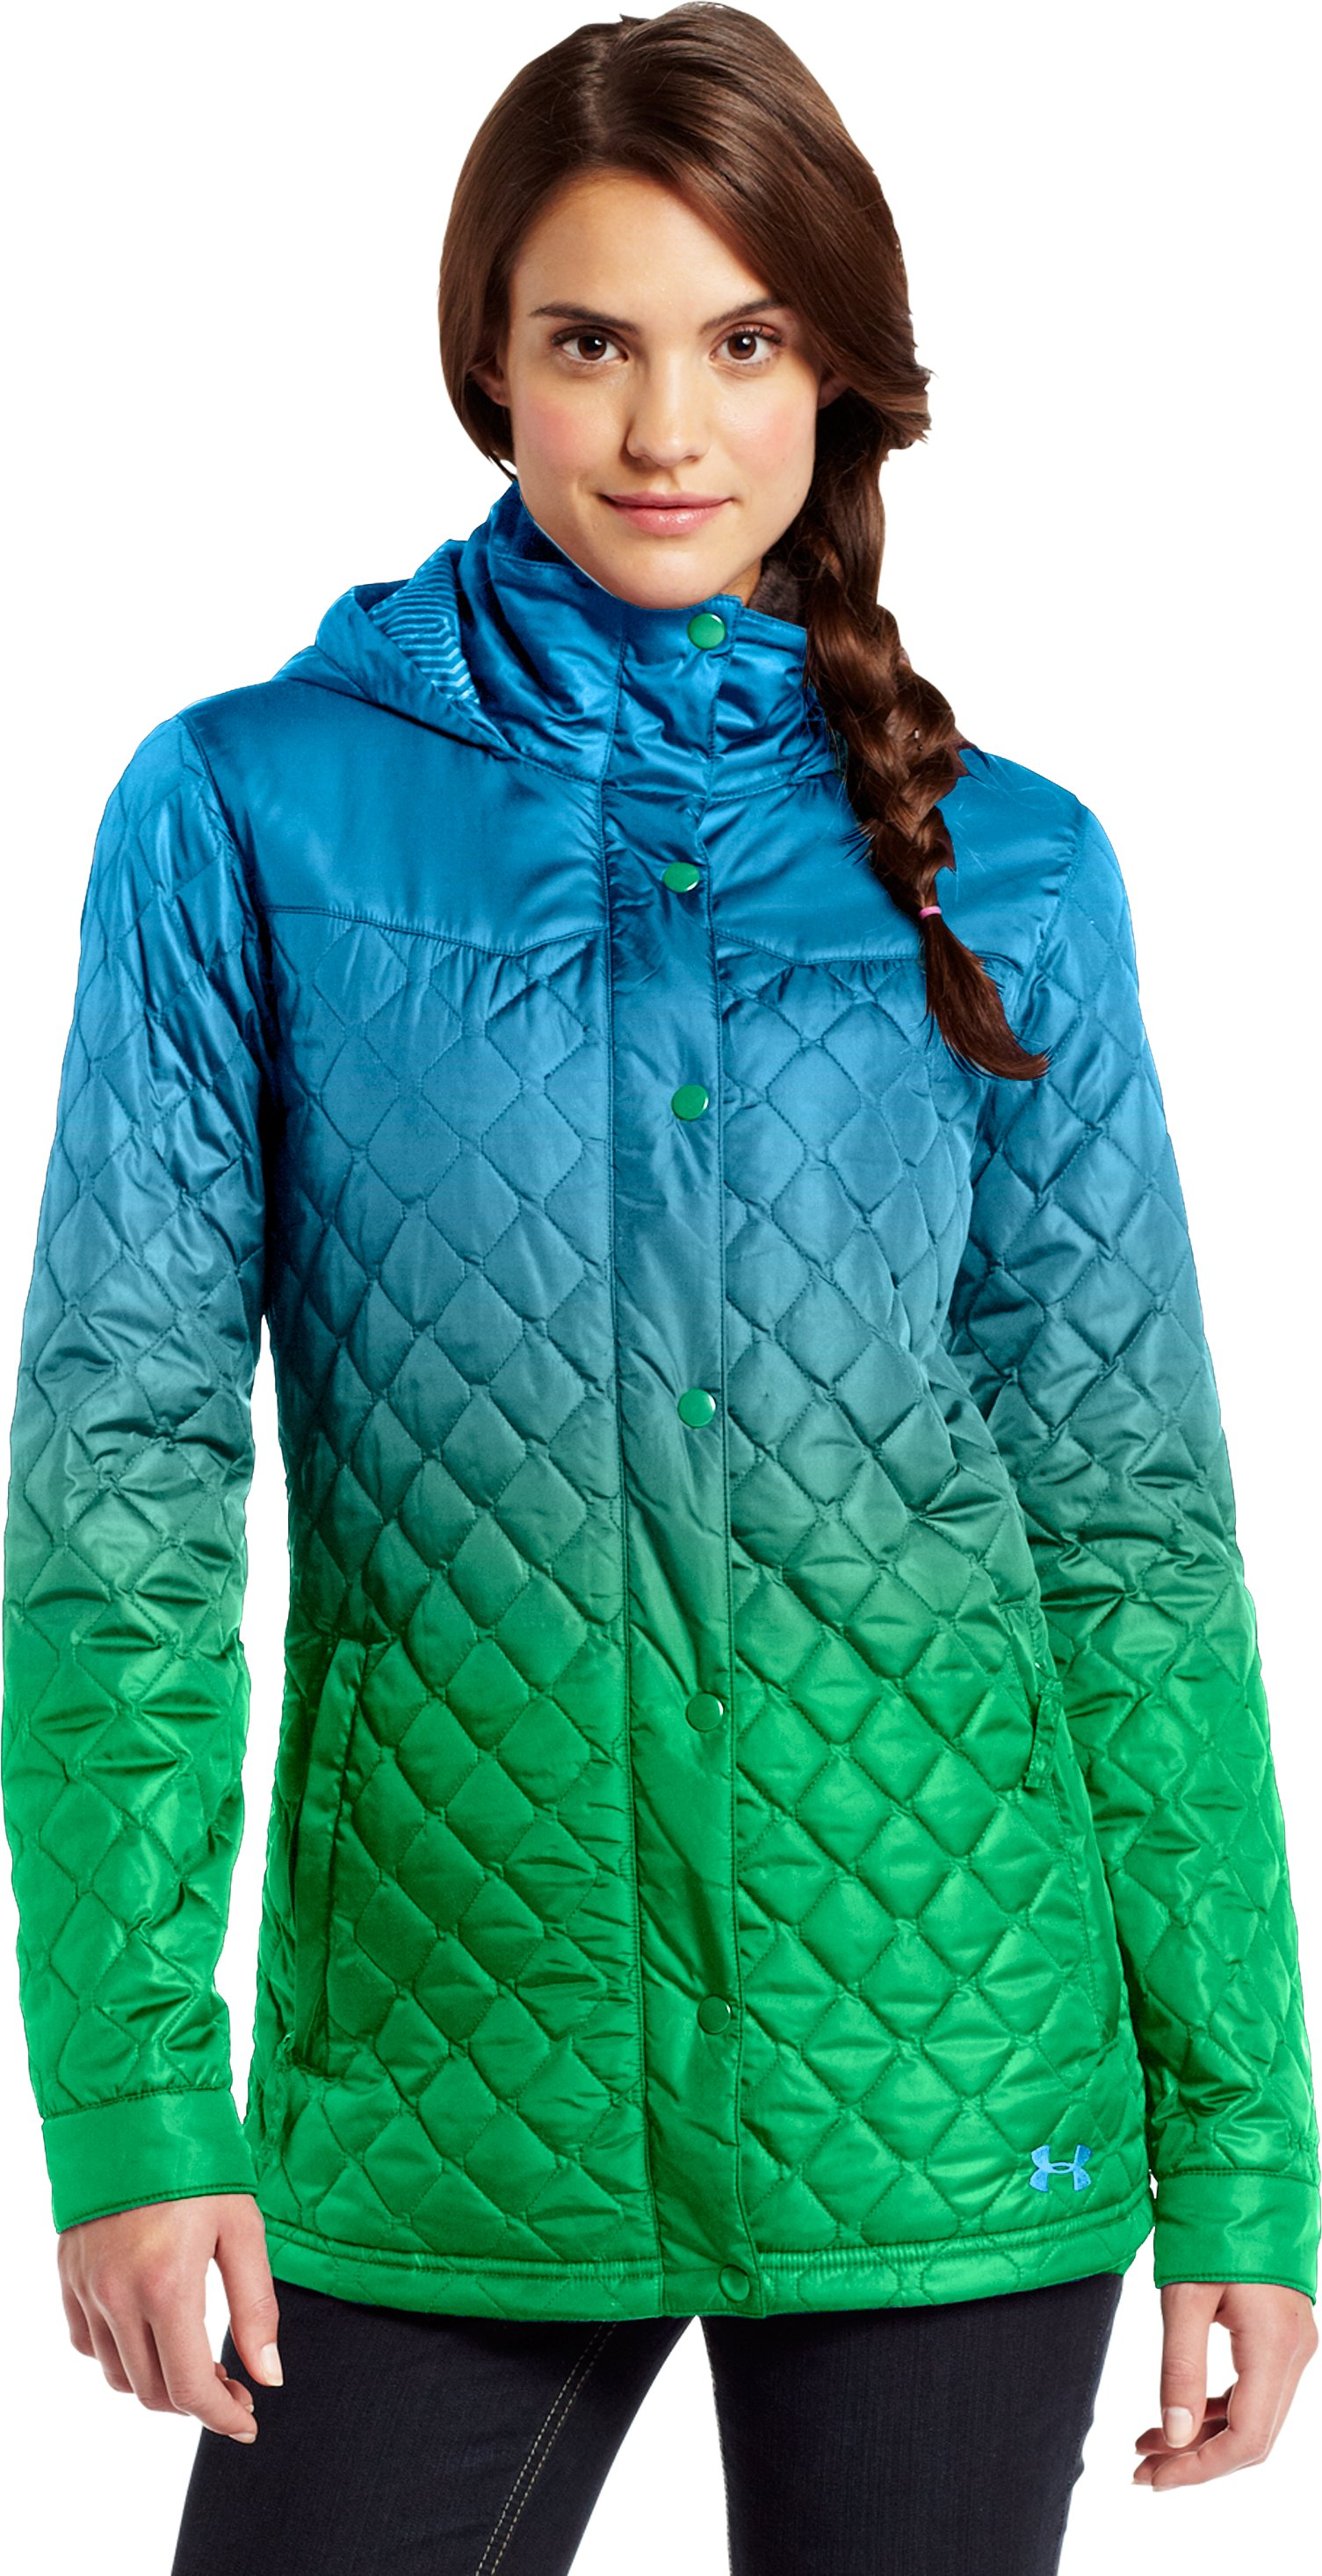 Women's ColdGear® Infrared Alpinlite Parka, Crown Jewel